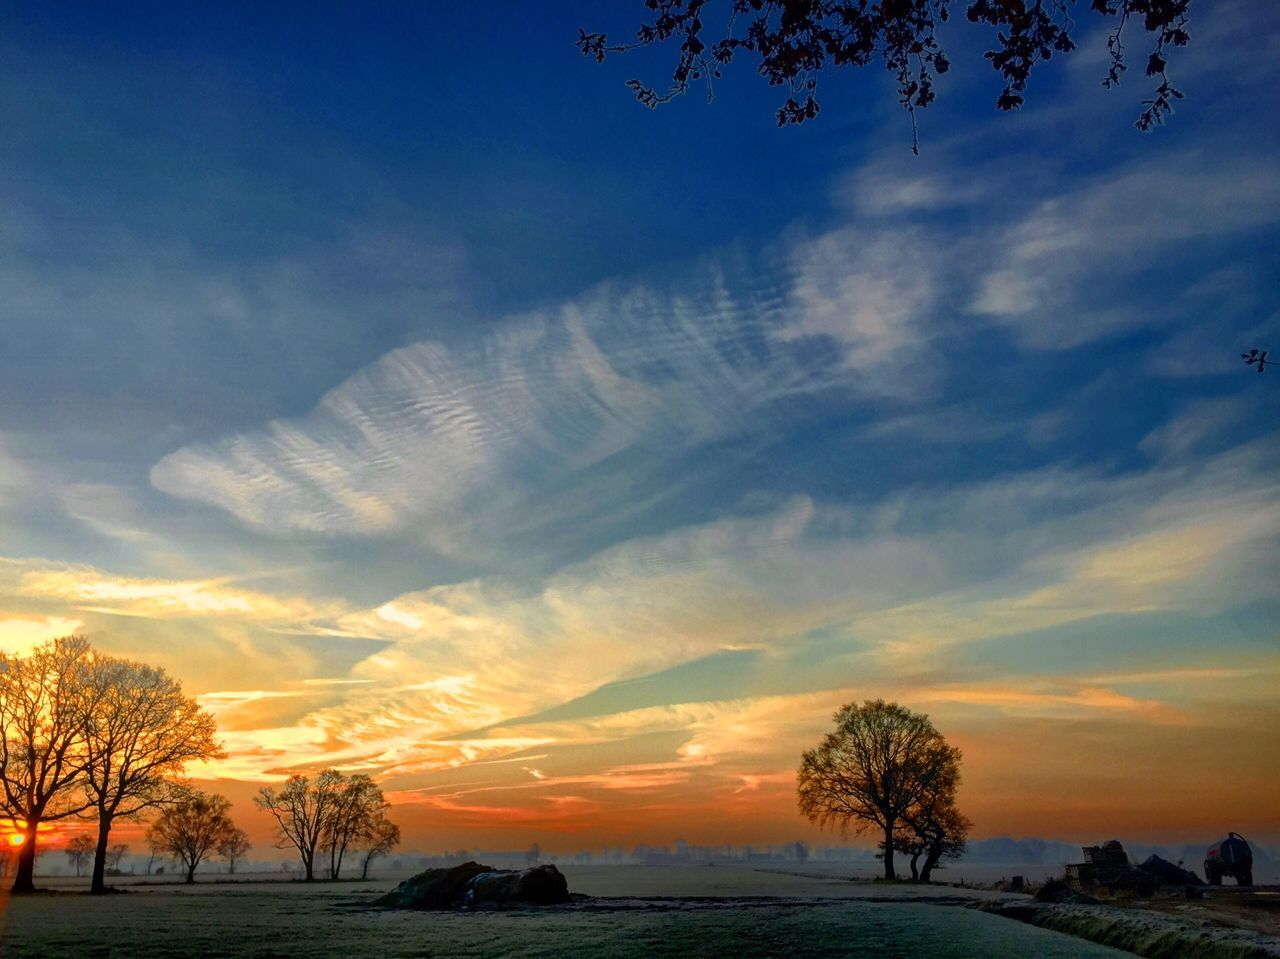 Sunrise Countryside Sky Sky Beauty In Nature Nature Tree Sunset Scenics Cloud - Sky Tranquility Tranquil Scene No People Landscape Outdoors Day